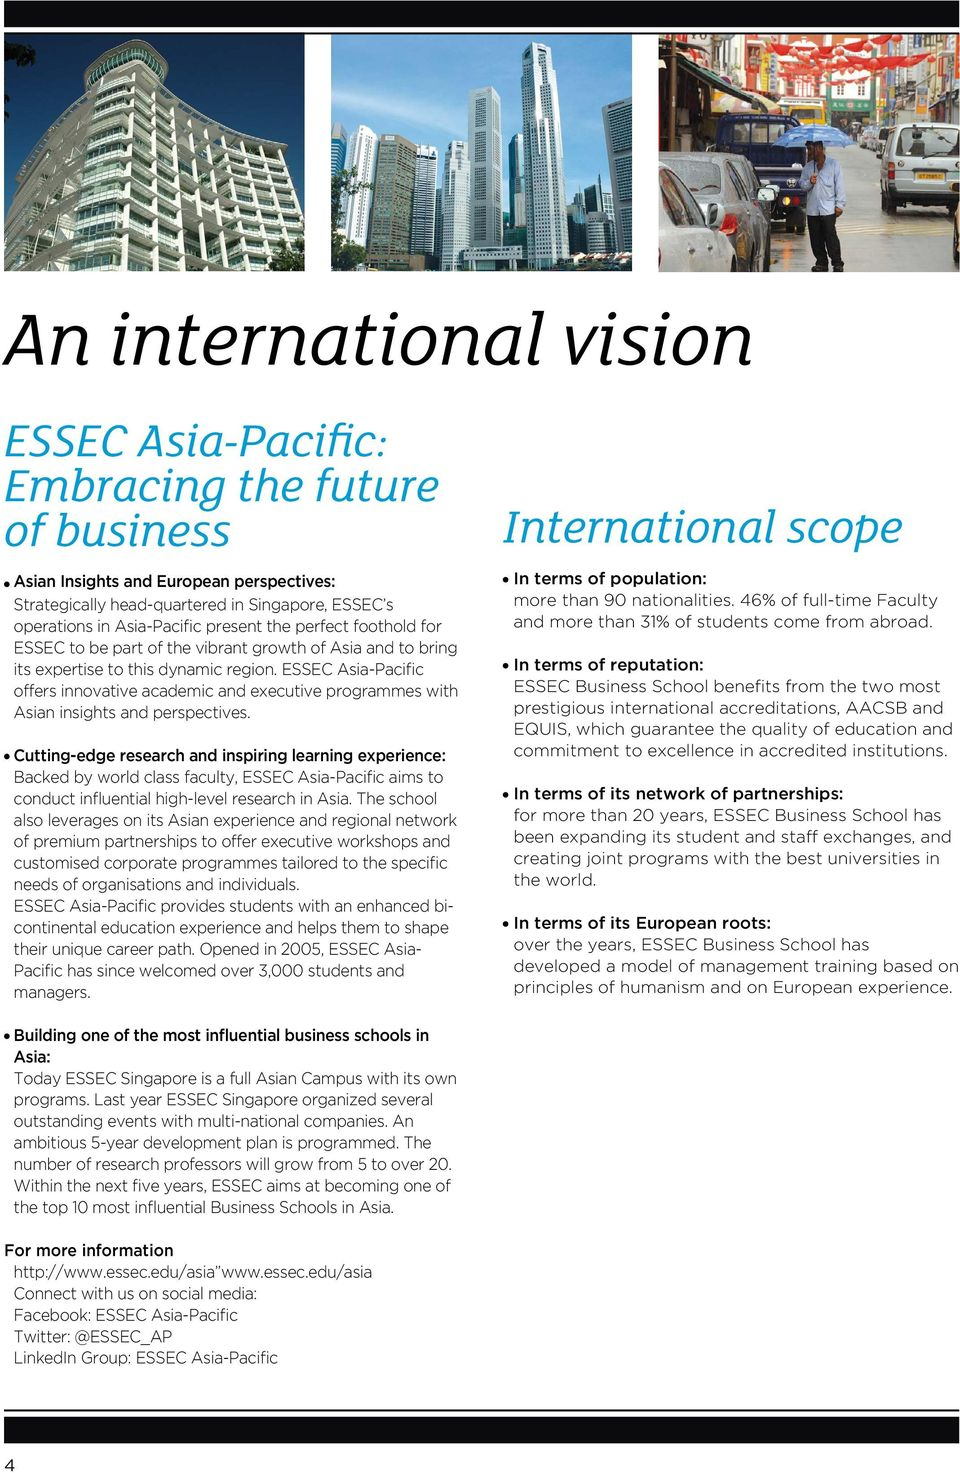 ESSEC Asia-Pacific offers innovative academic and executive programmes with Asian insights and perspectives.